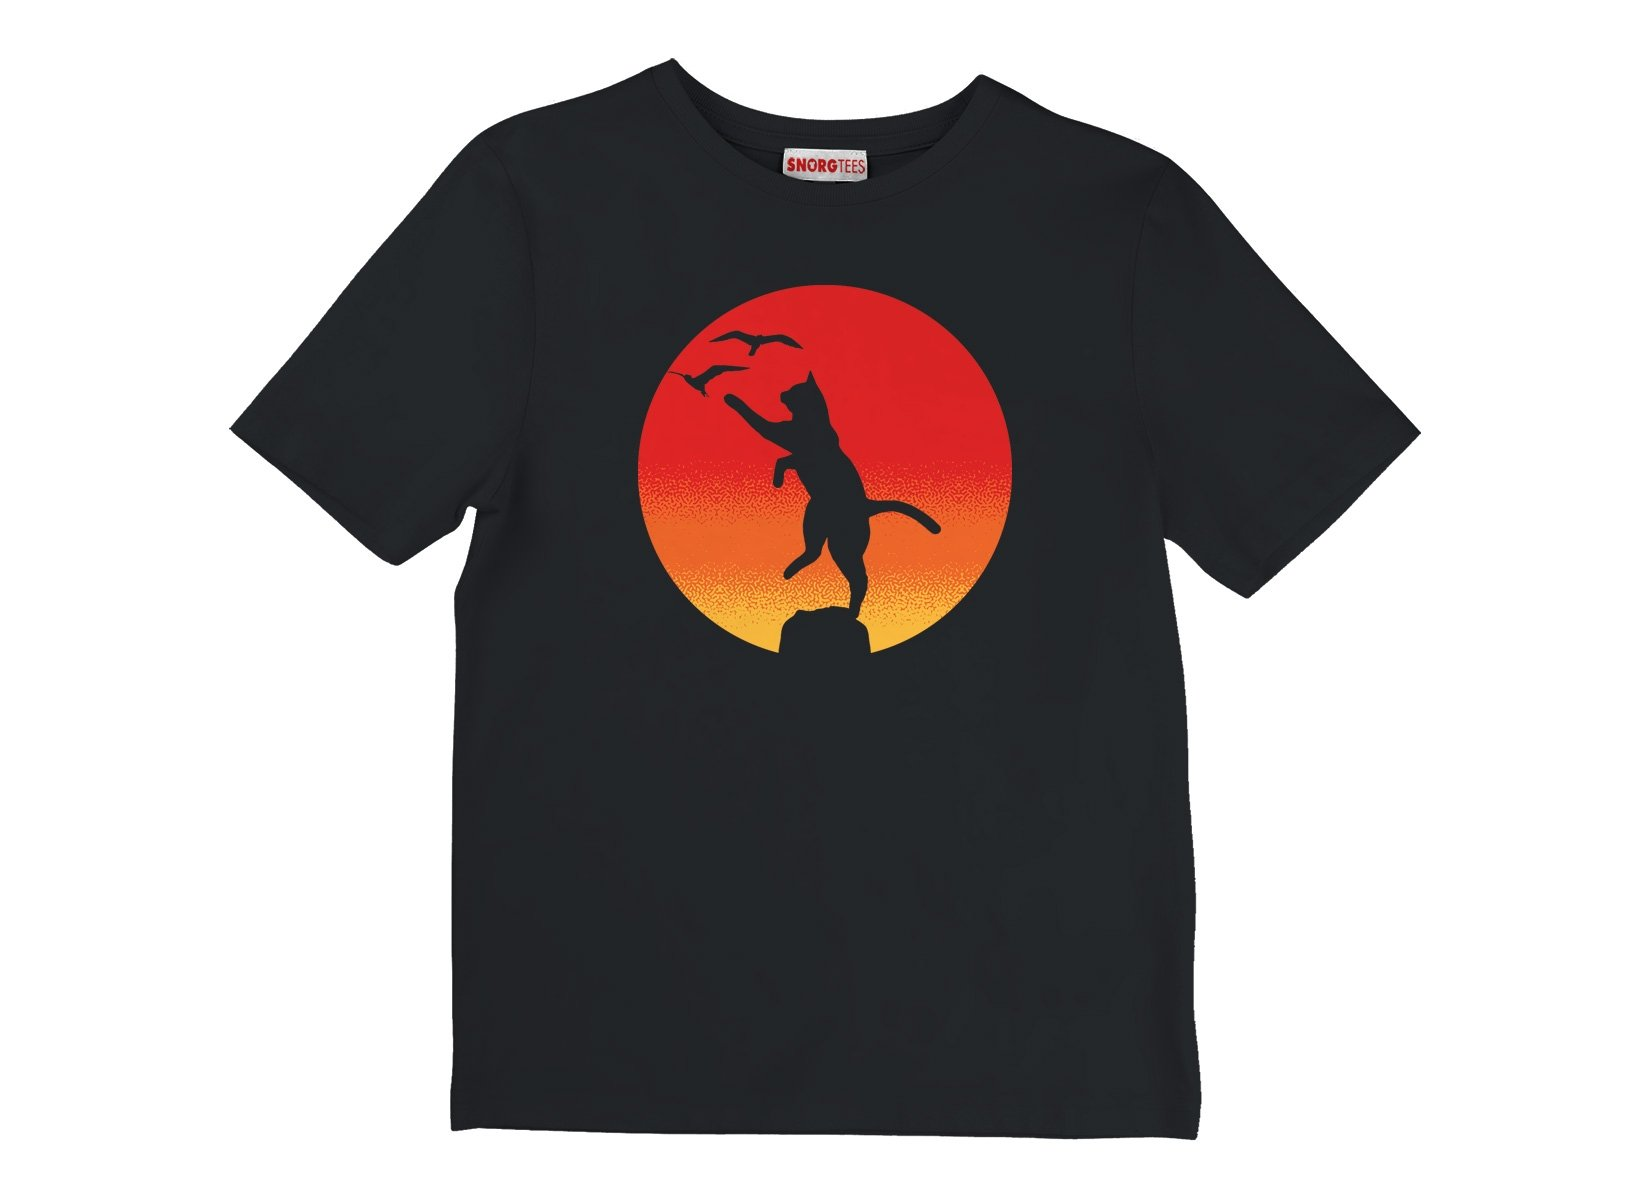 The Karate Cat on Kids T-Shirt